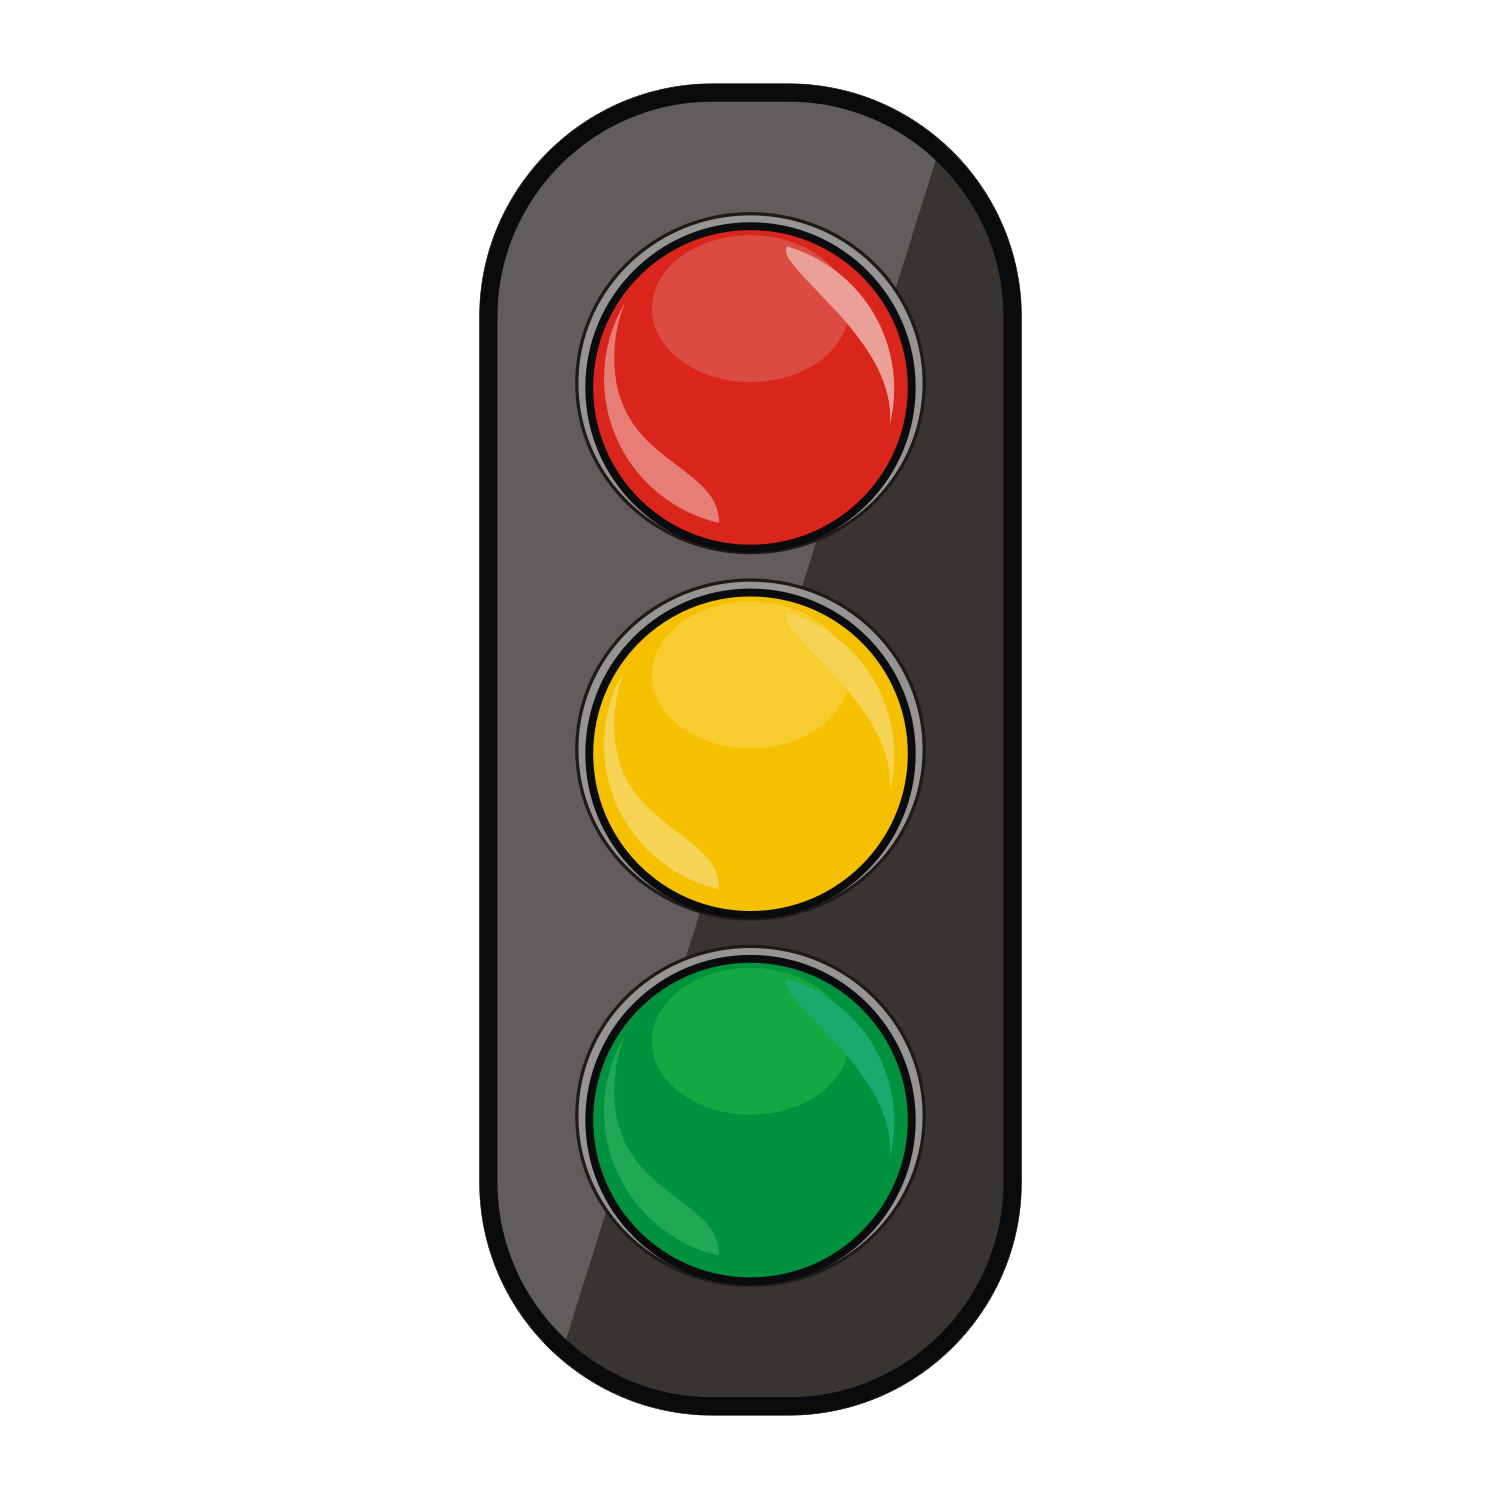 Traffic light png. Transparent images pluspng hd